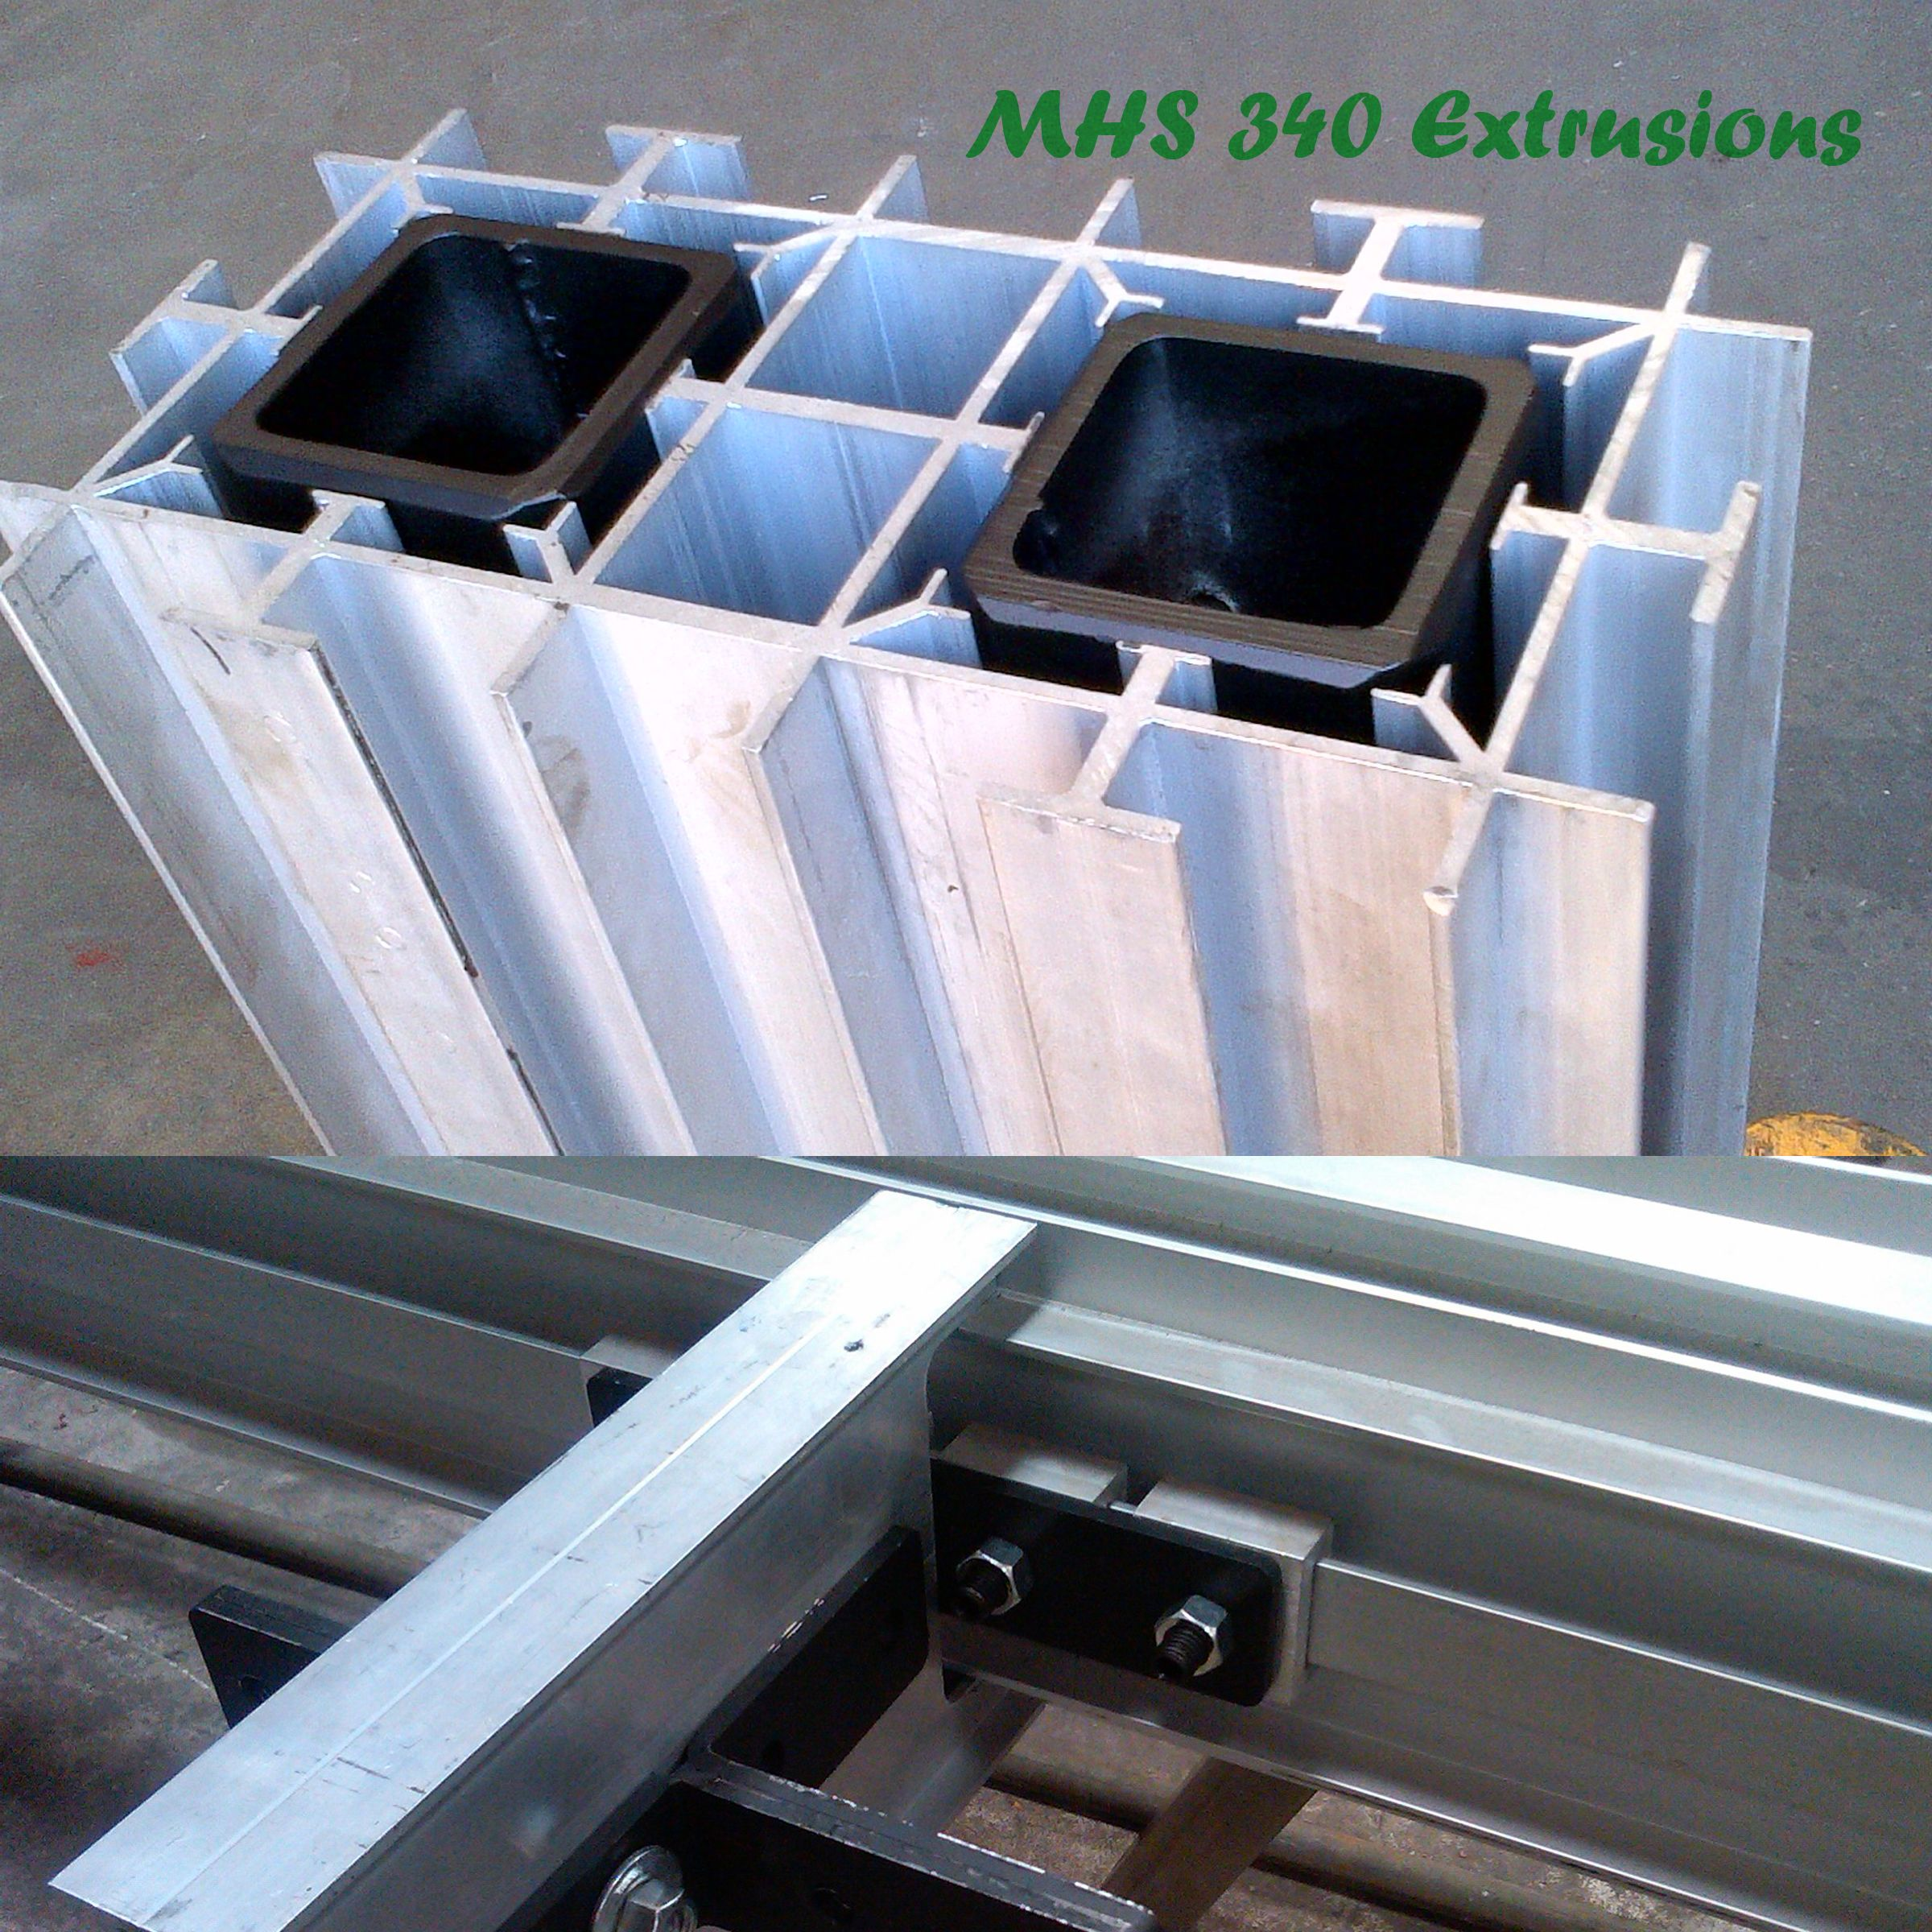 Offers Modular Electrical Wiring System For Prefabricated Buildings